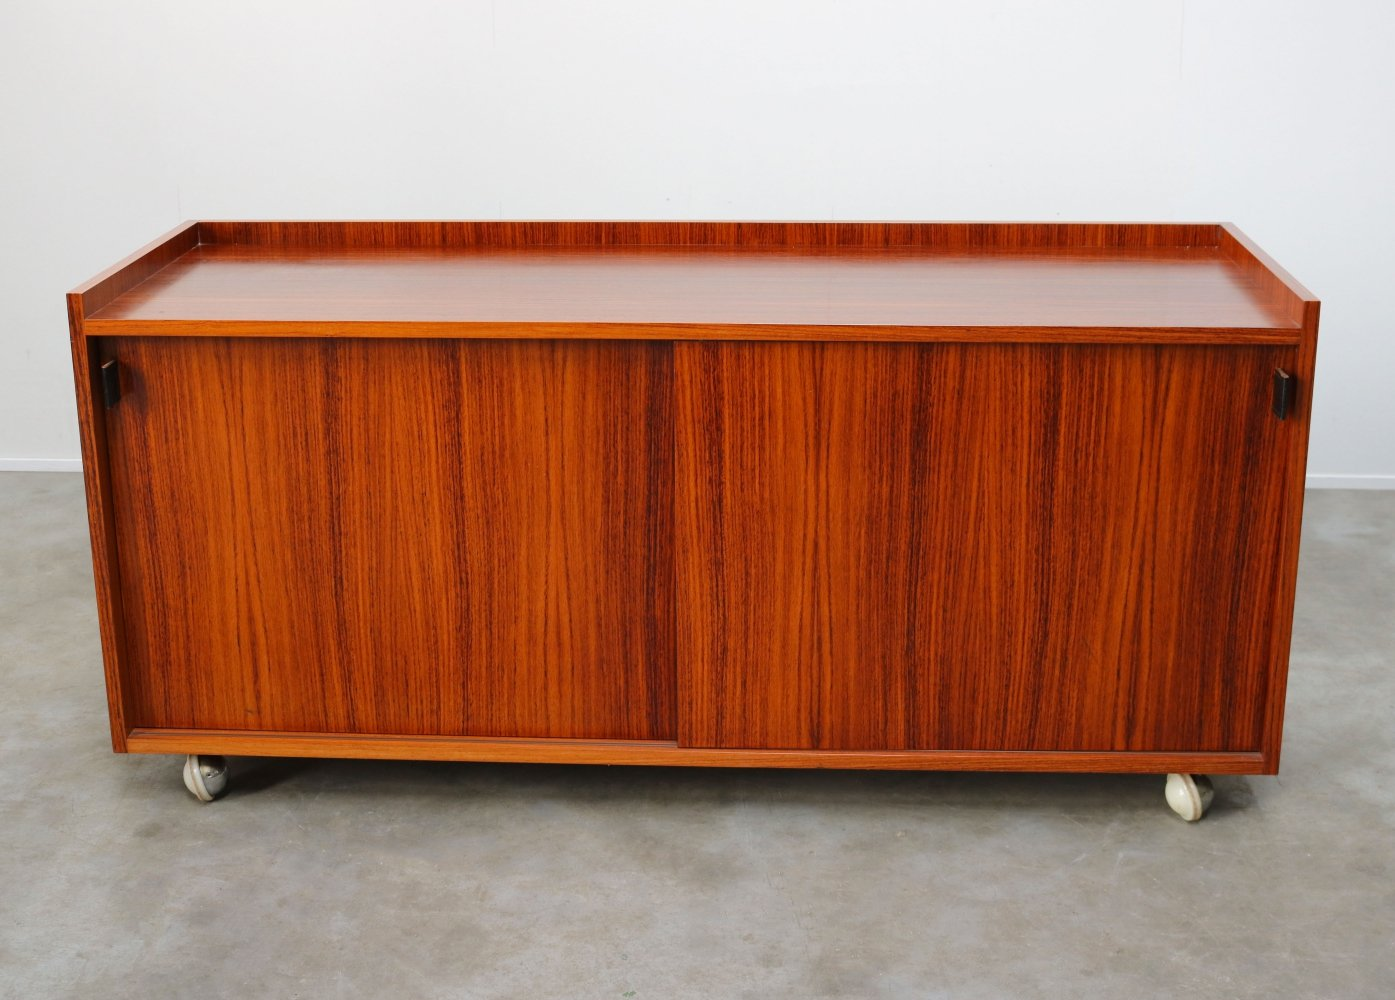 Minimalist sideboard in rosewood by Florence Knoll for De Coene / Knoll, 1960